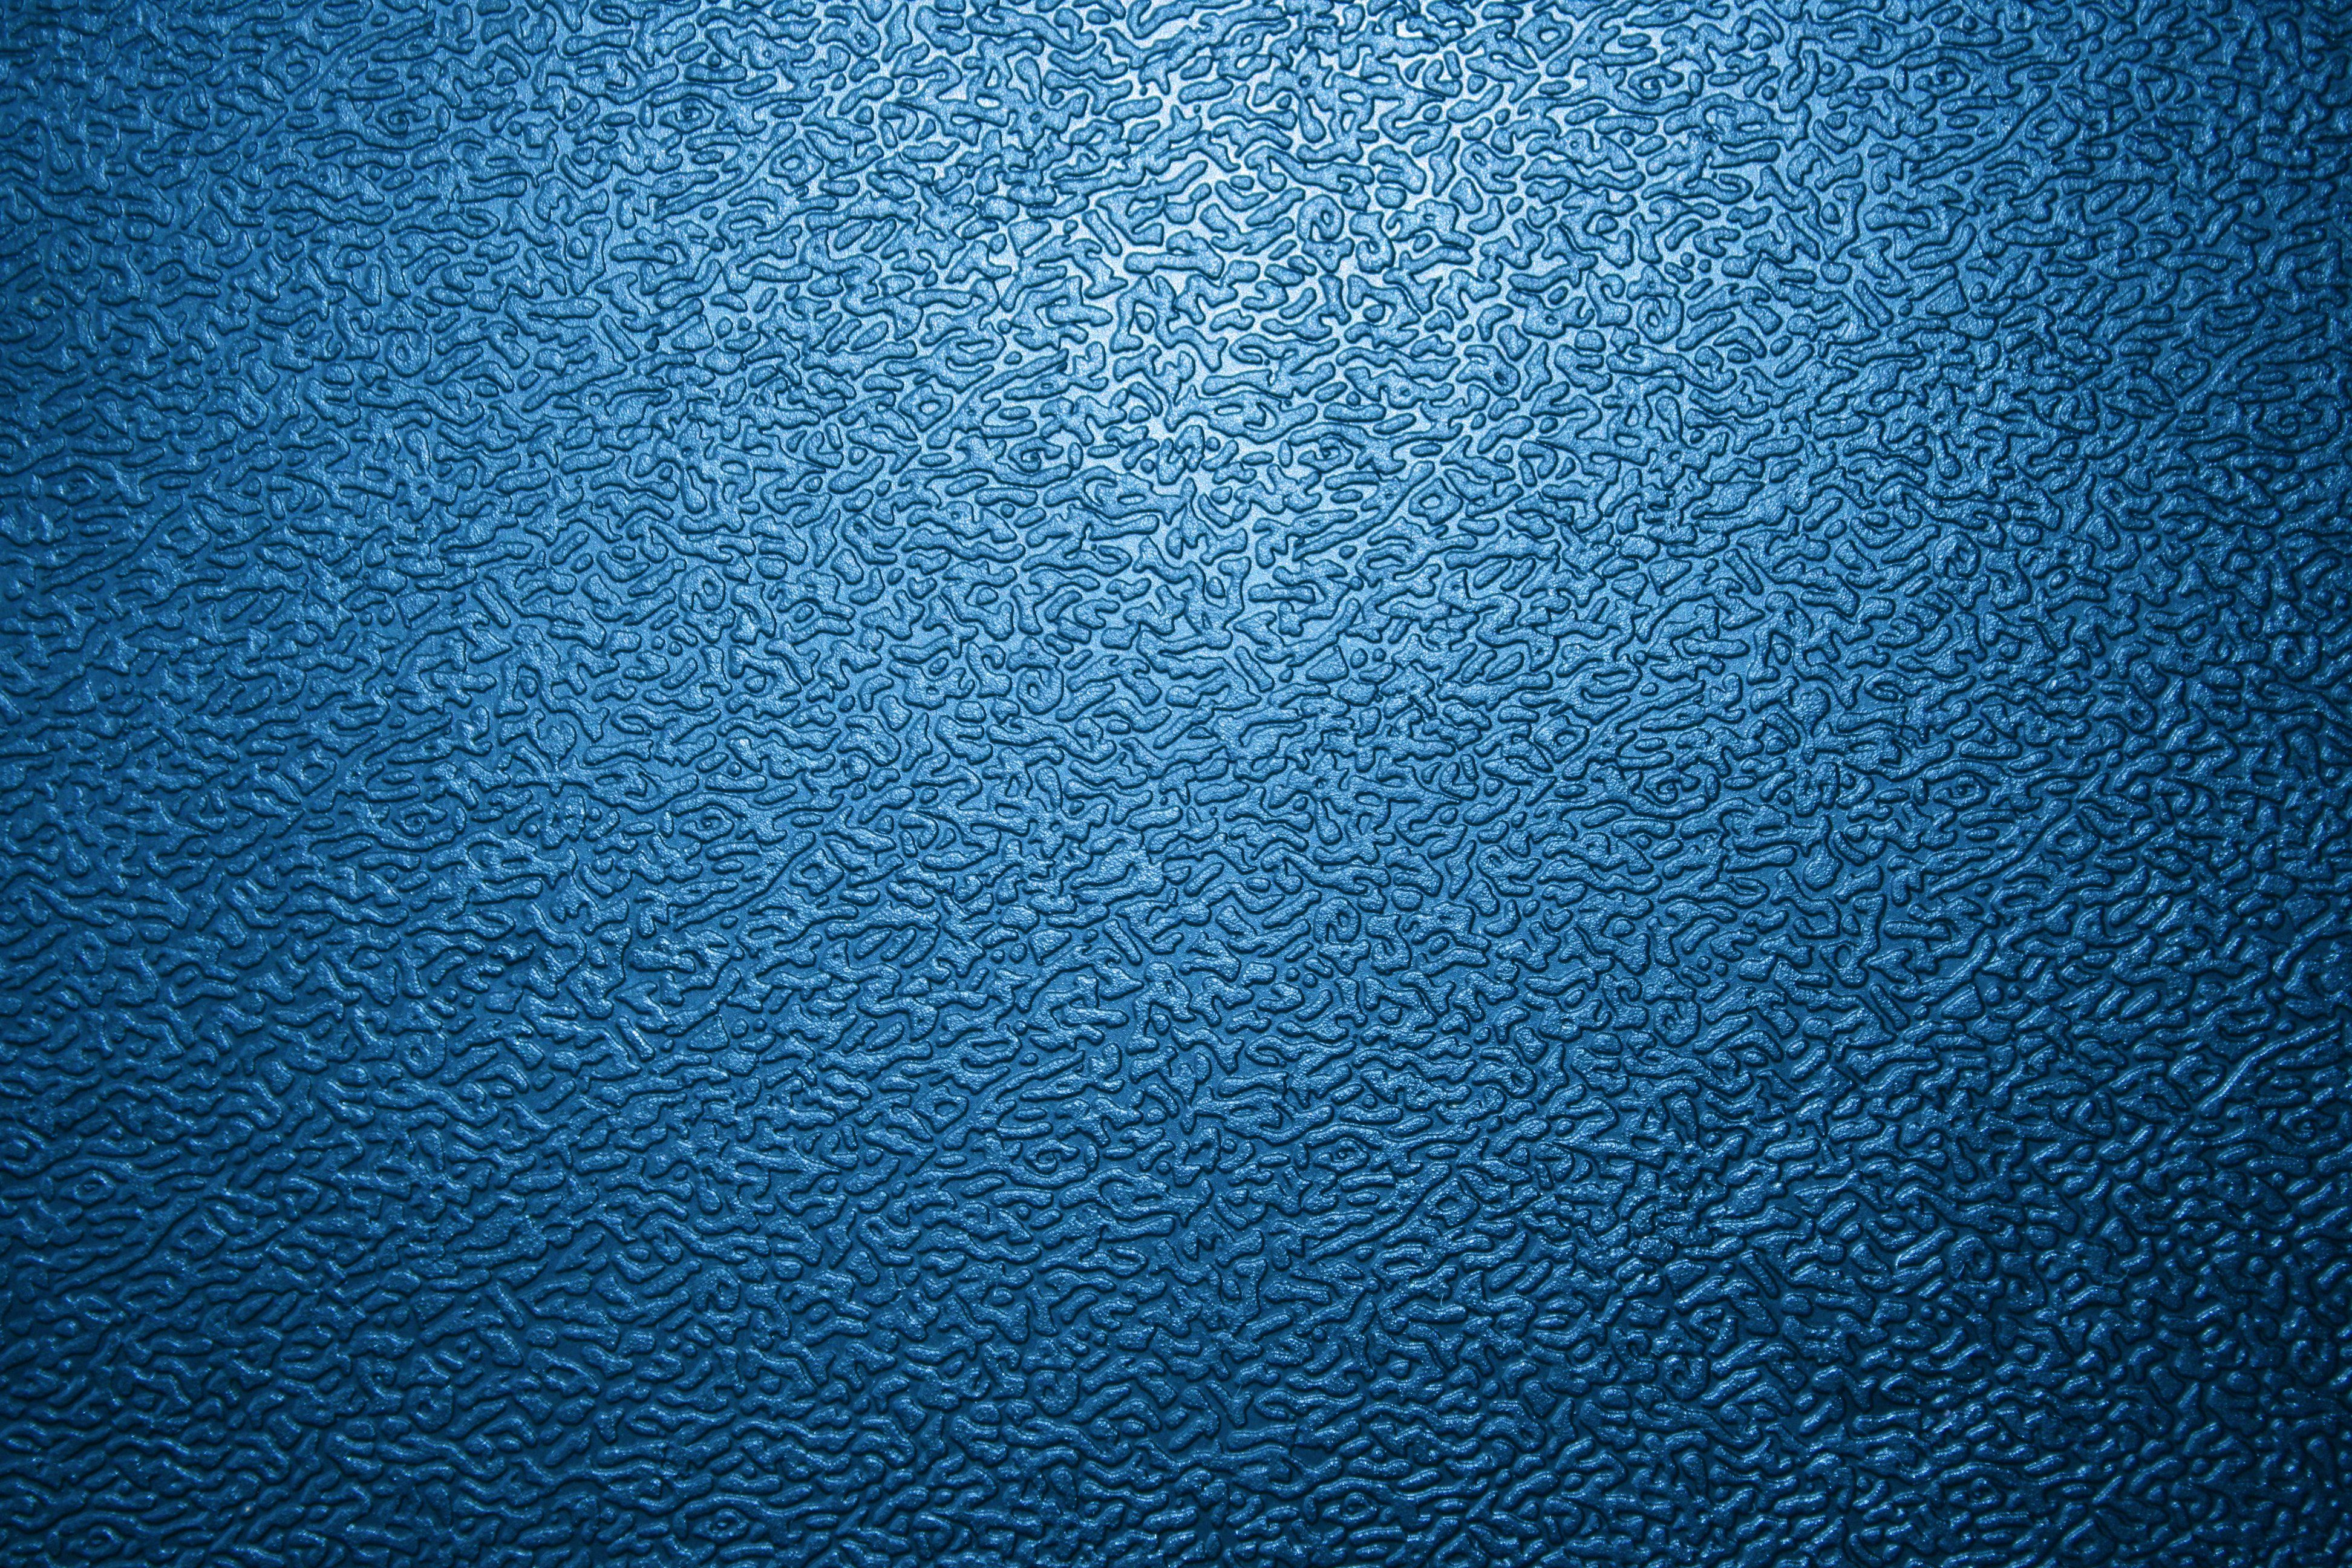 Textured Blue Plastic Close Picture Free Graph 3157984 Jpg 3888 2592